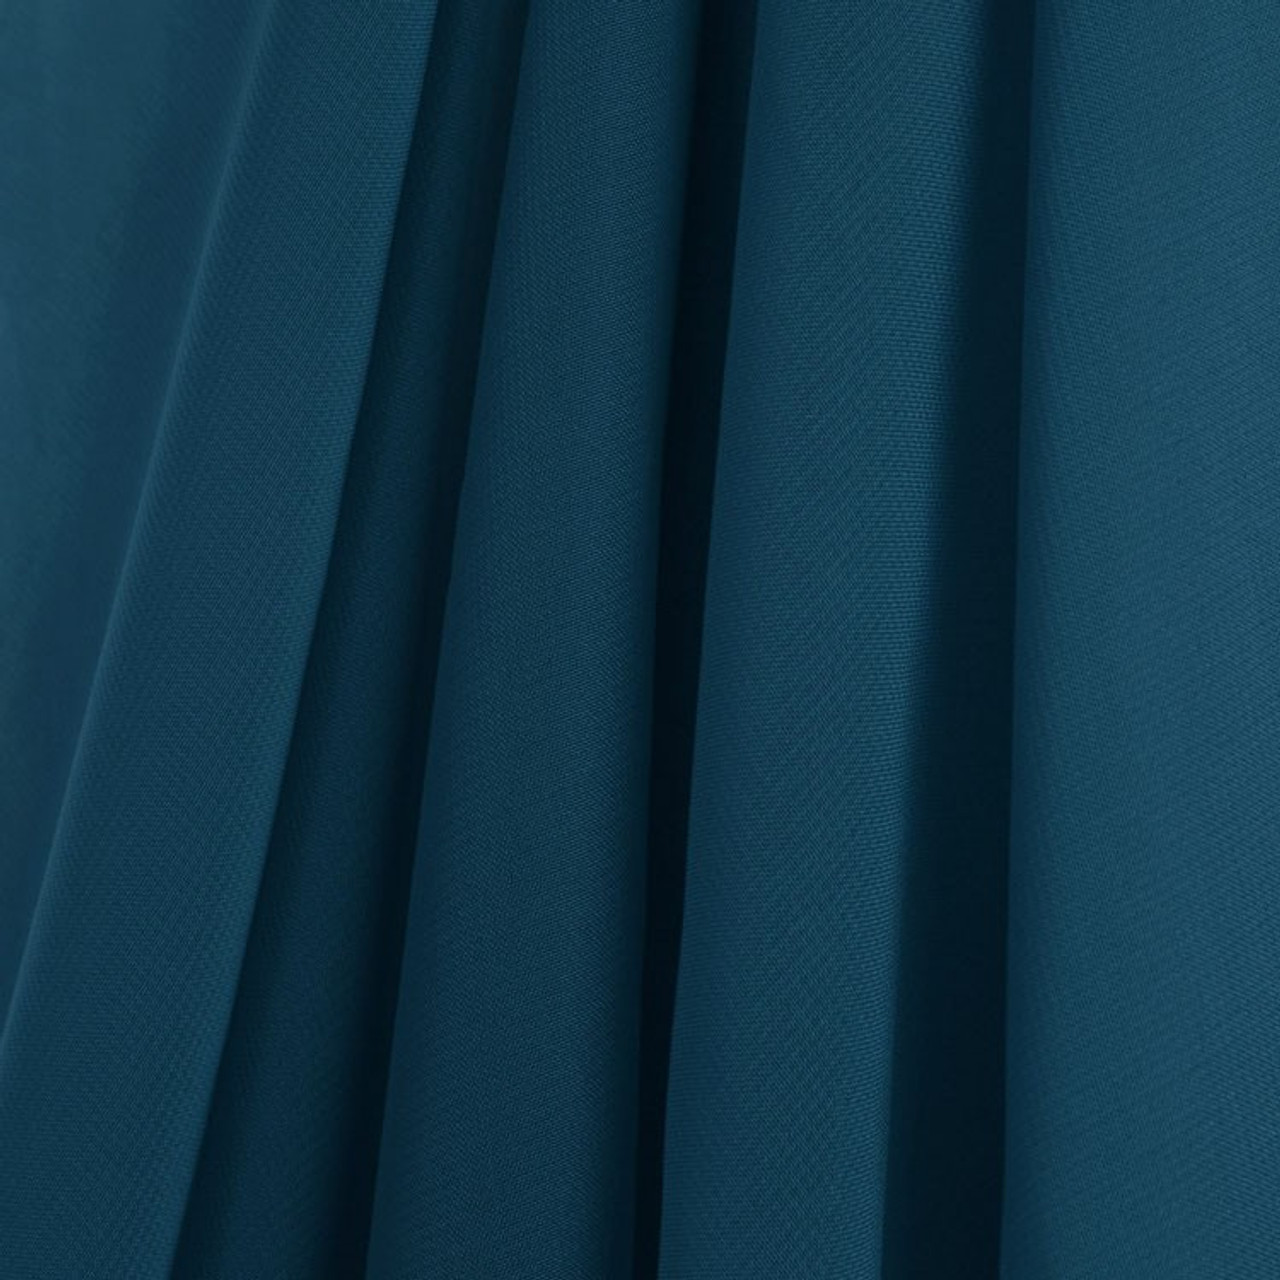 Teal Blue Chiffon Drapes Panels For Wedding Events Decor Backdrop Draping Curtains Ak Trading Co